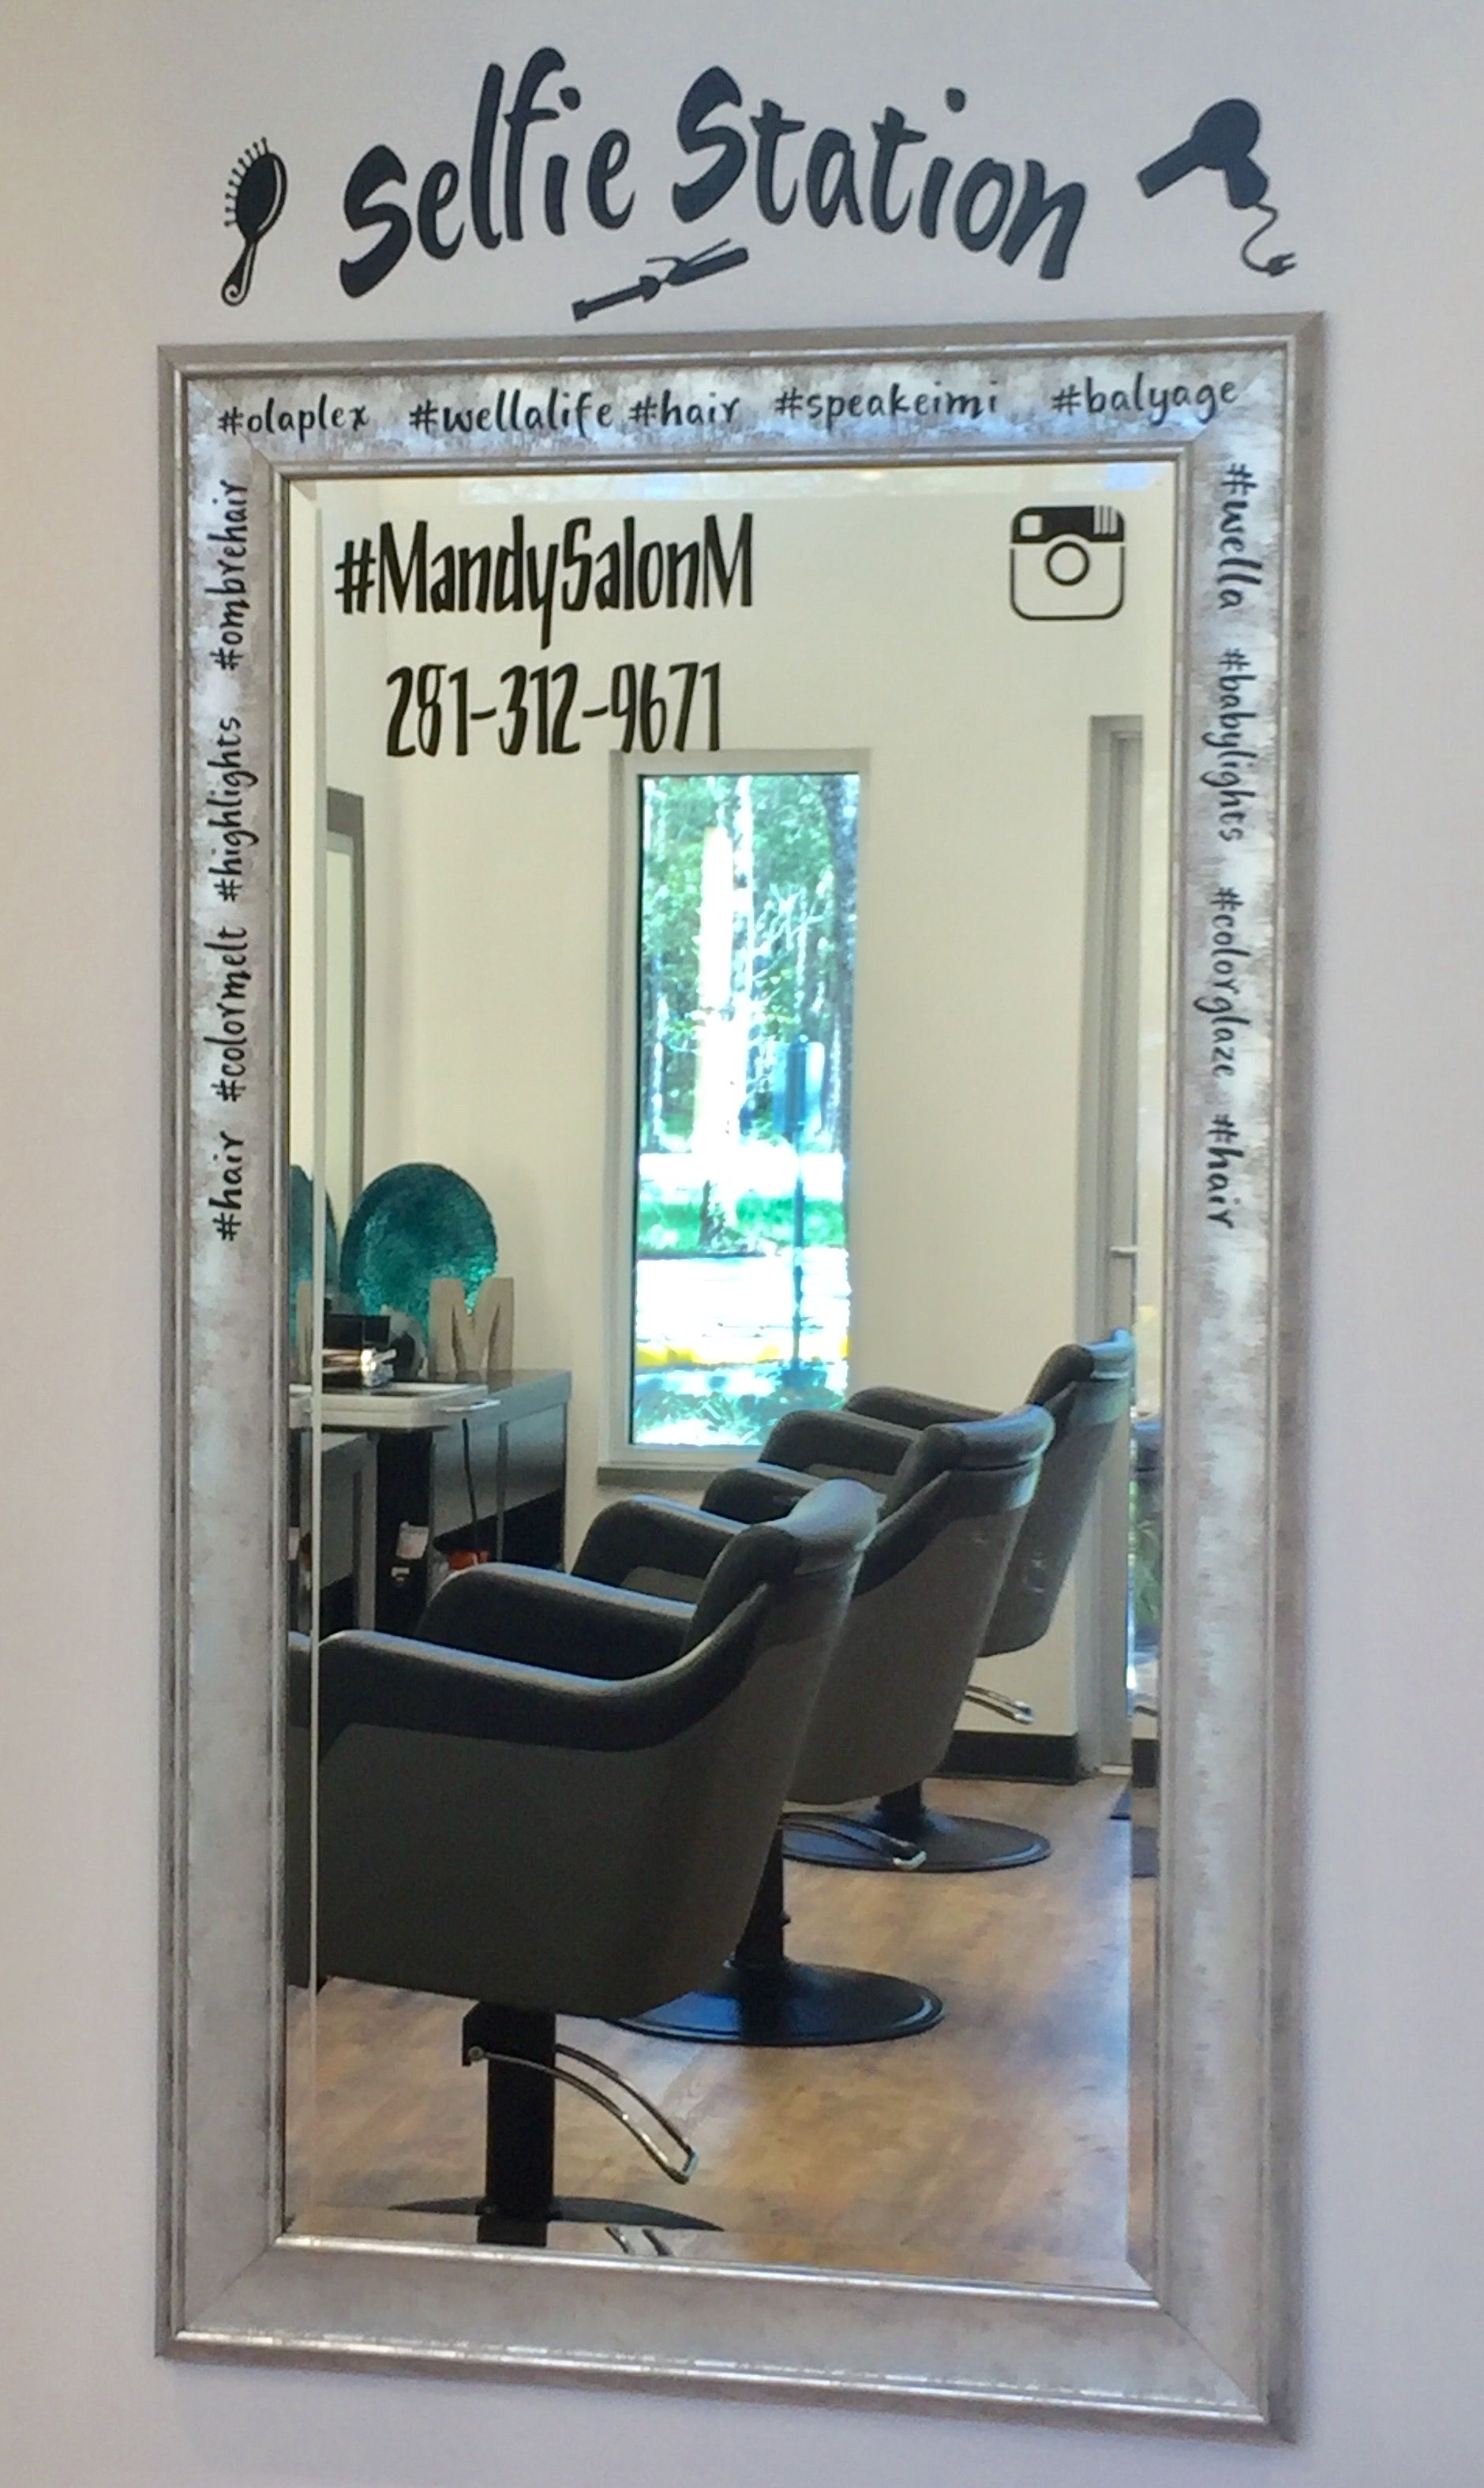 Salon central tips selfie station salonworkstation beauty salon decor small beauty salon ideas